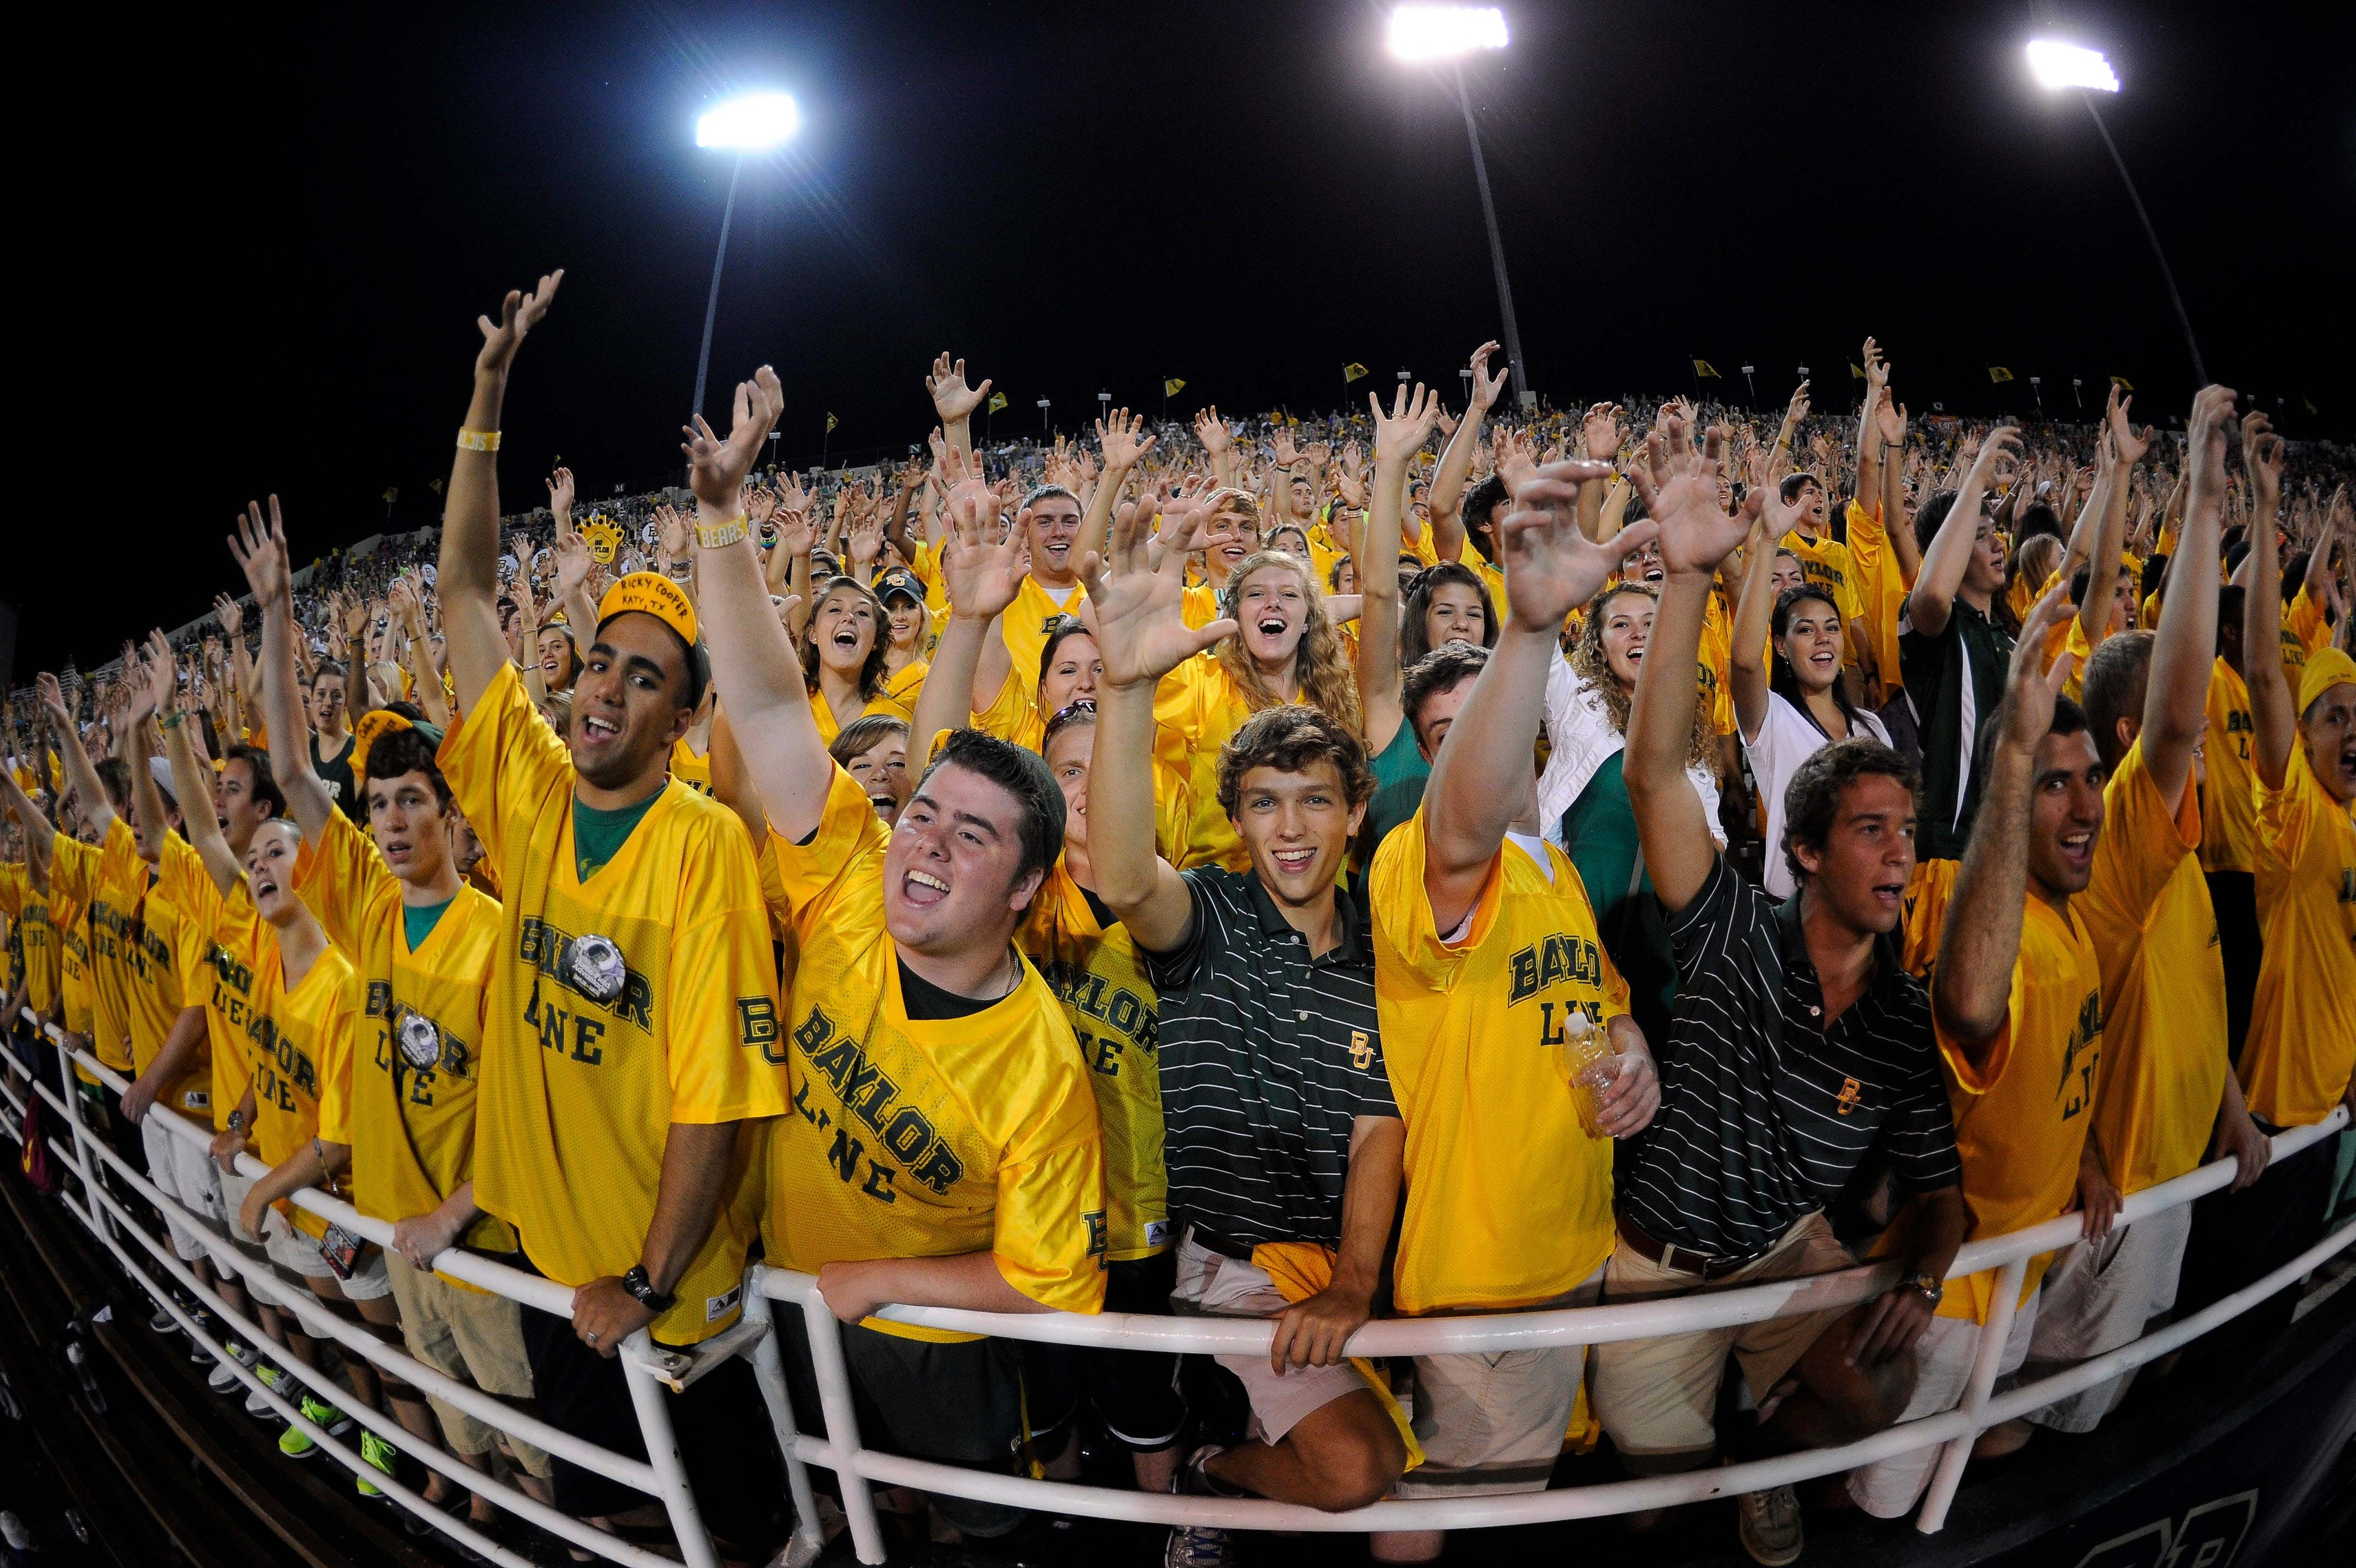 Sep 15, 2012; Waco, TX, USA; Baylor Bears students root for their team as they face the Sam Houston State Bearkats during the fourth quarter at Floyd Casey Stadium. The Bears defeated the Bearkats 43-28. Mandatory Credit: Jerome Miron-US PRESSWIRE